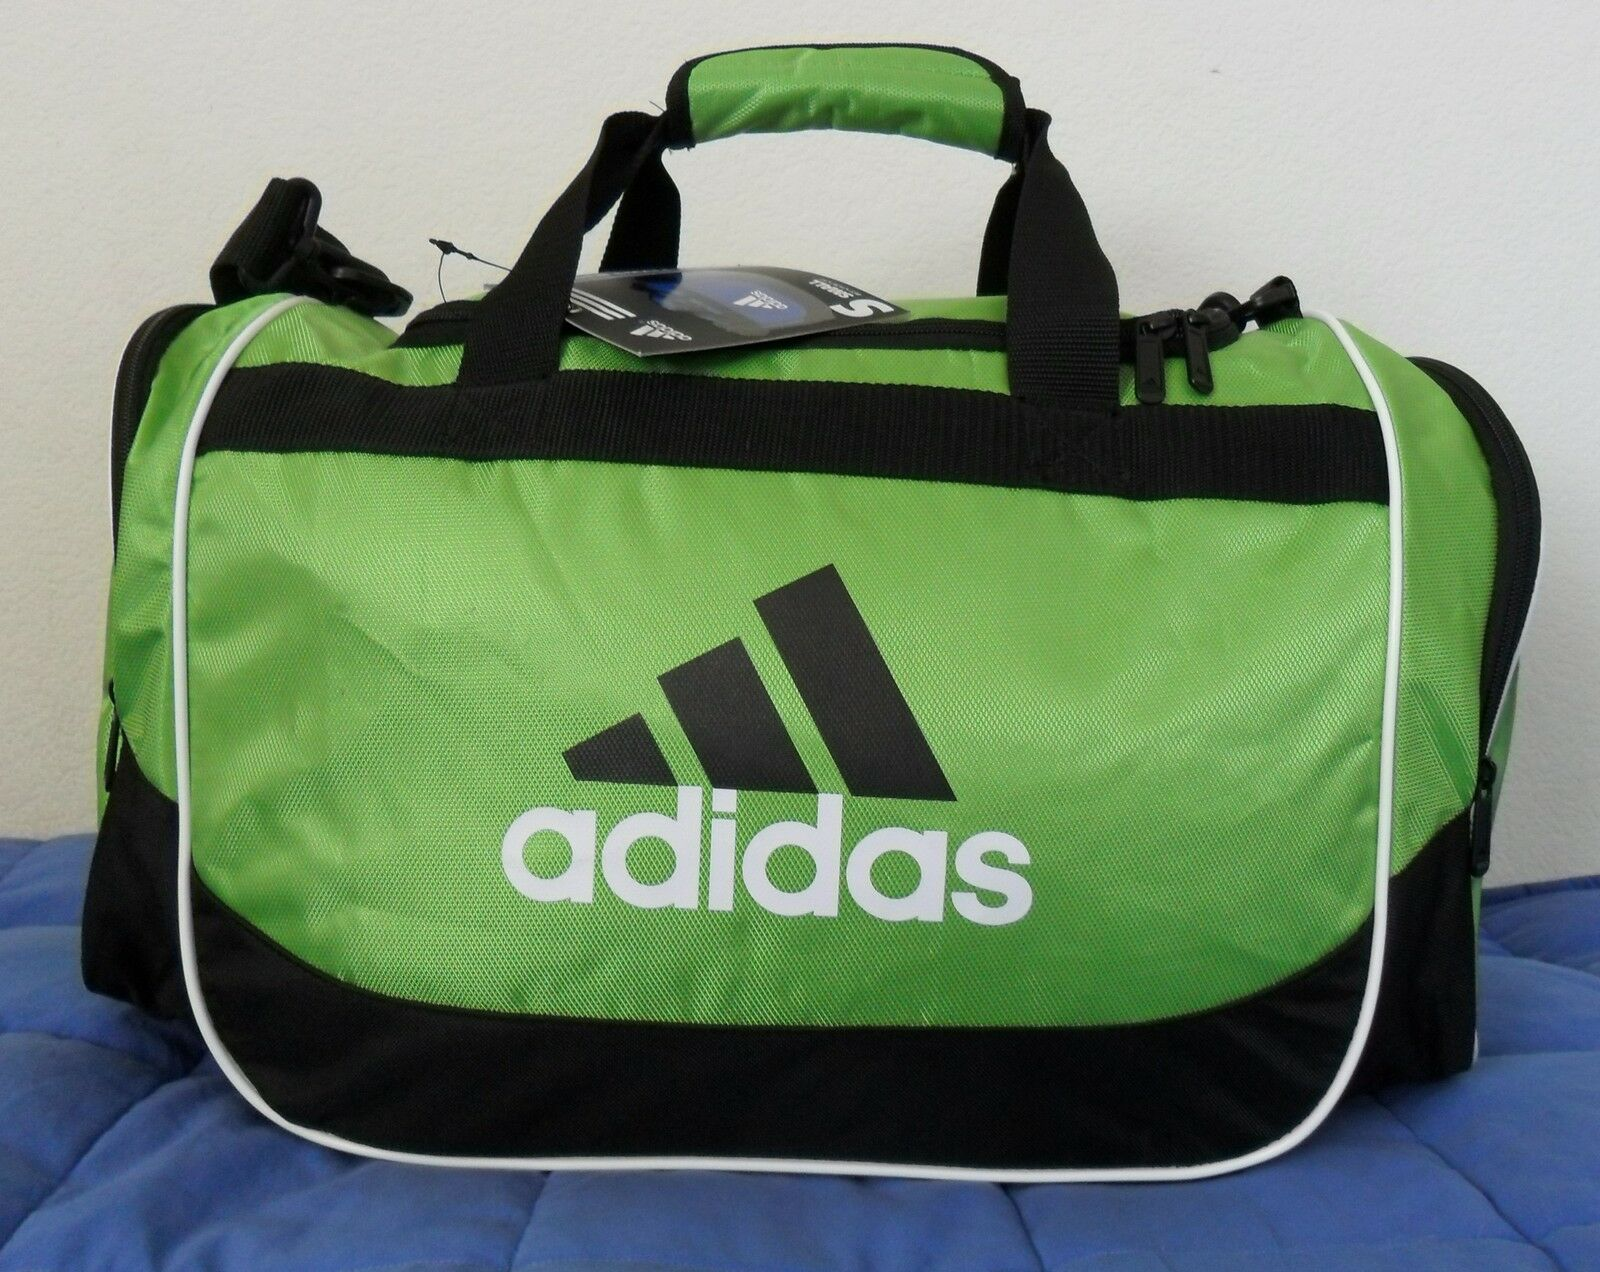 Adidas DEFENDER DUFFEL BAG SmallTraveling Carry-on overnight soccer Gym Tennis